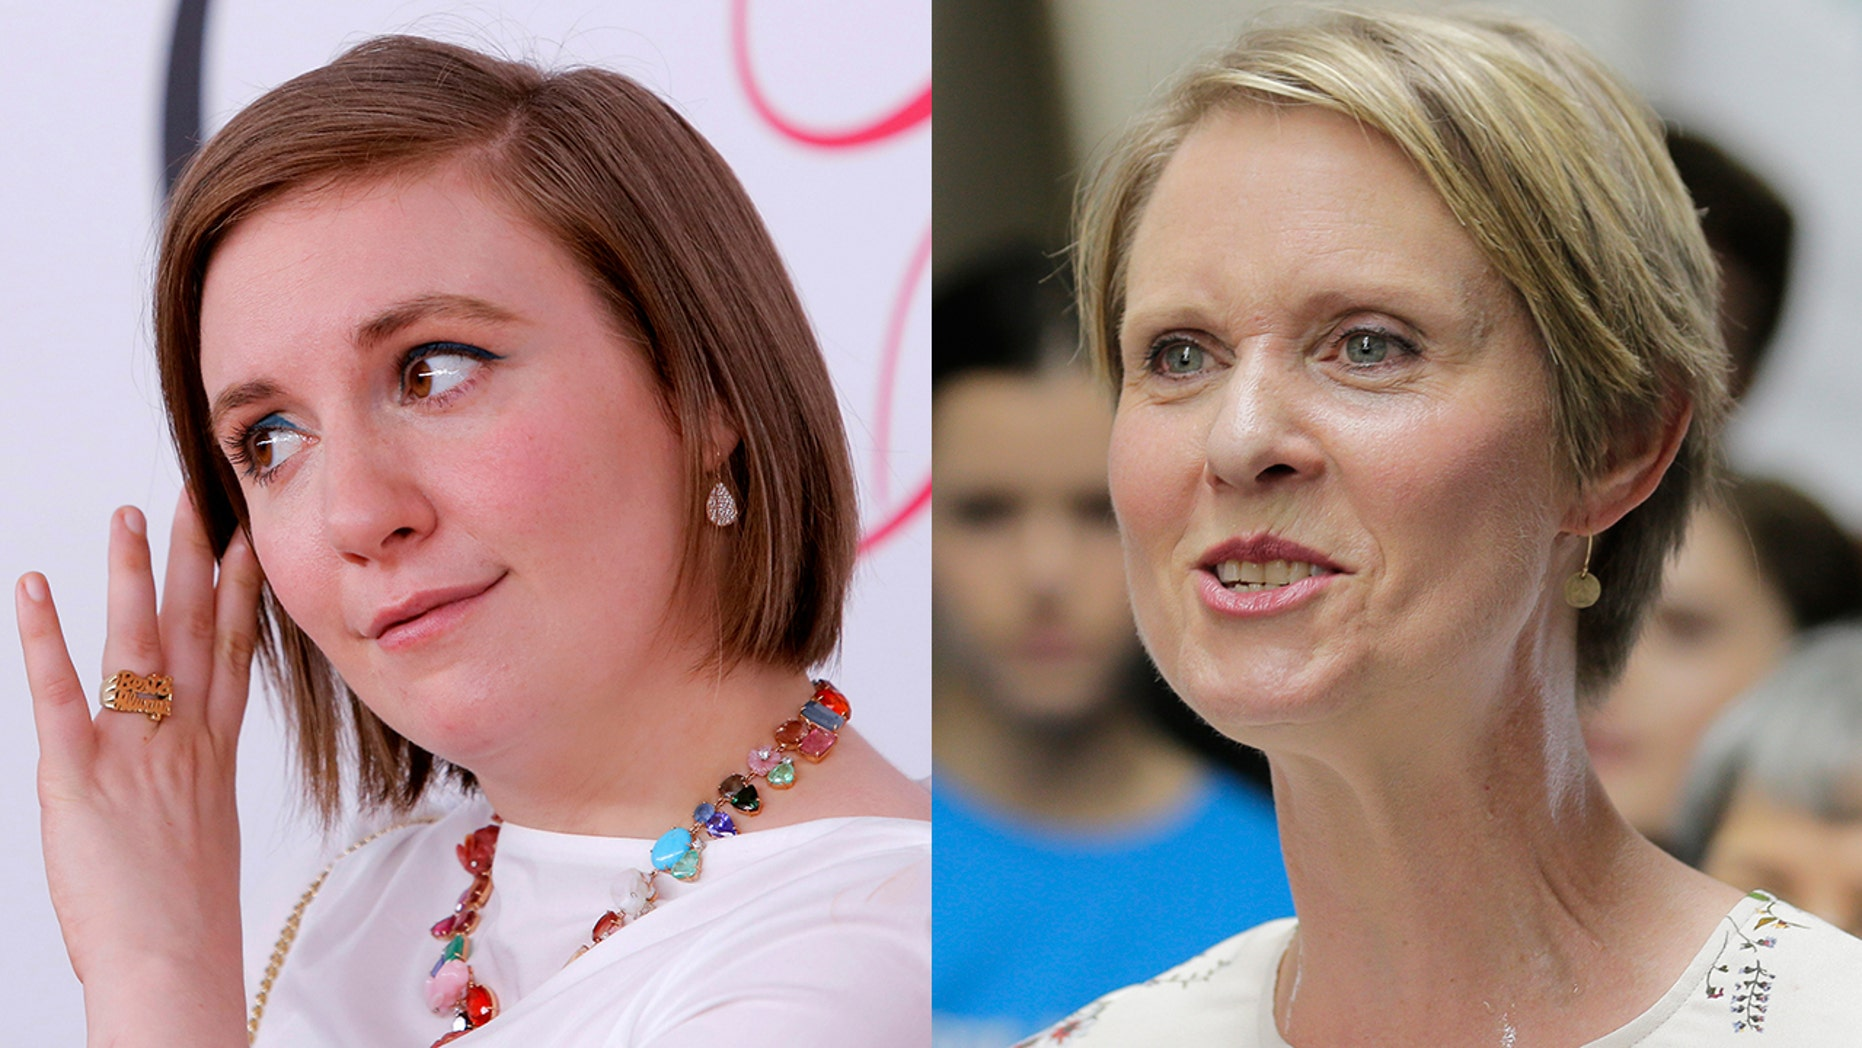 Lena Dunham shared on Instagram that she hosted a fundraiser for Cynthia Nixon's bid for governor.